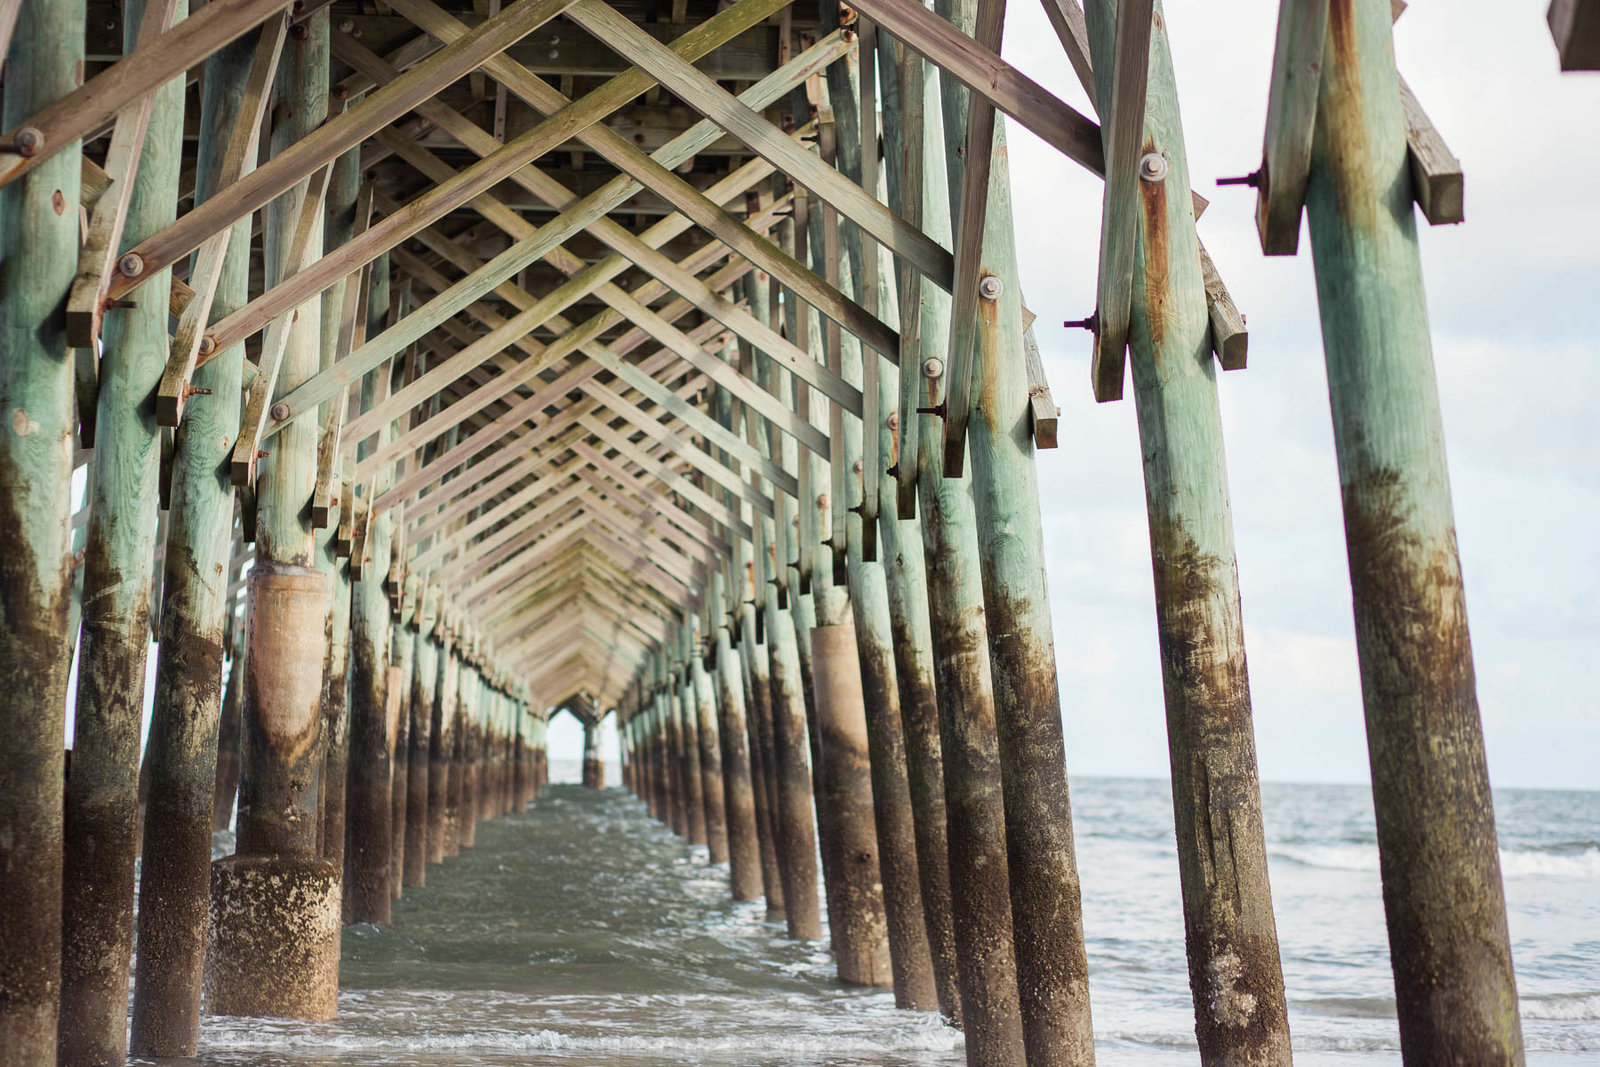 Fishing pier, Folly Beach in South Carolina